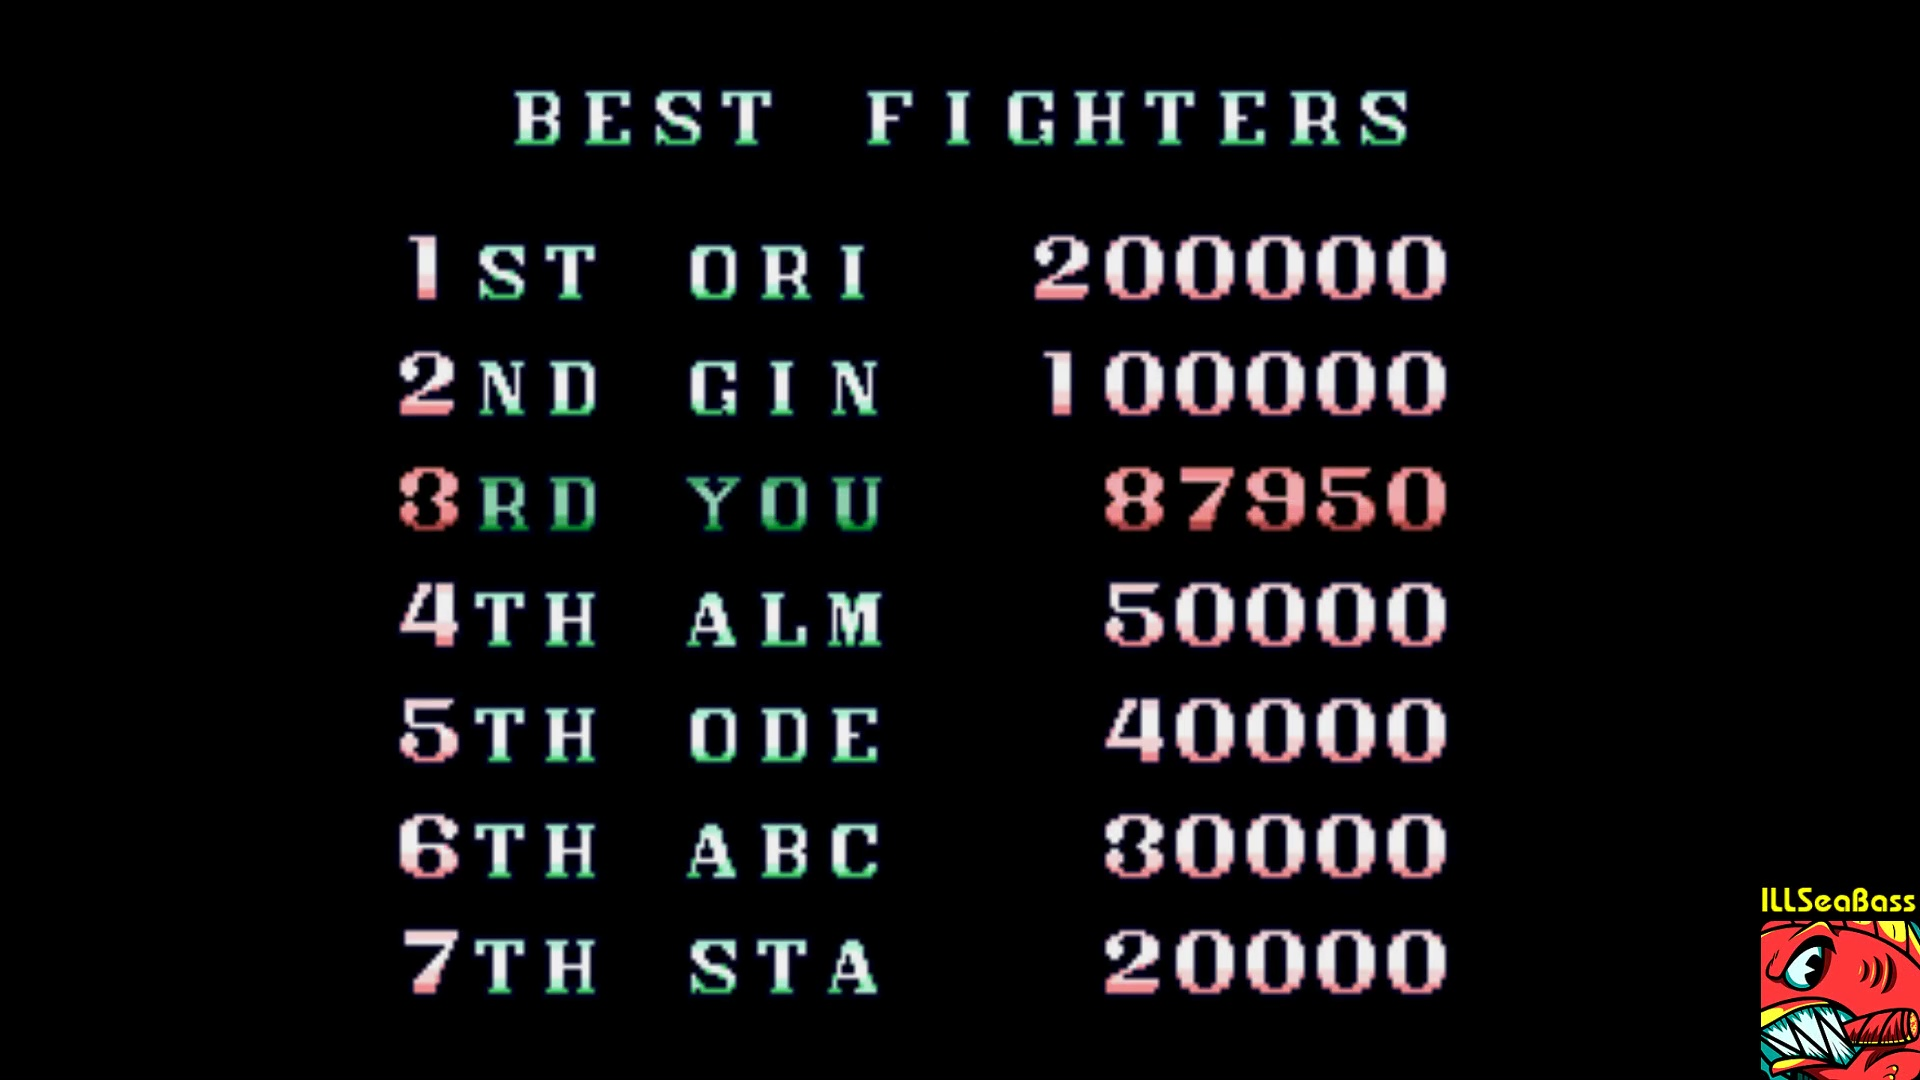 ILLSeaBass: Mercs / Wolf of the Battlefield II [Arcade/Normal] (Sega Genesis / MegaDrive Emulated) 87,950 points on 2018-01-27 21:55:32